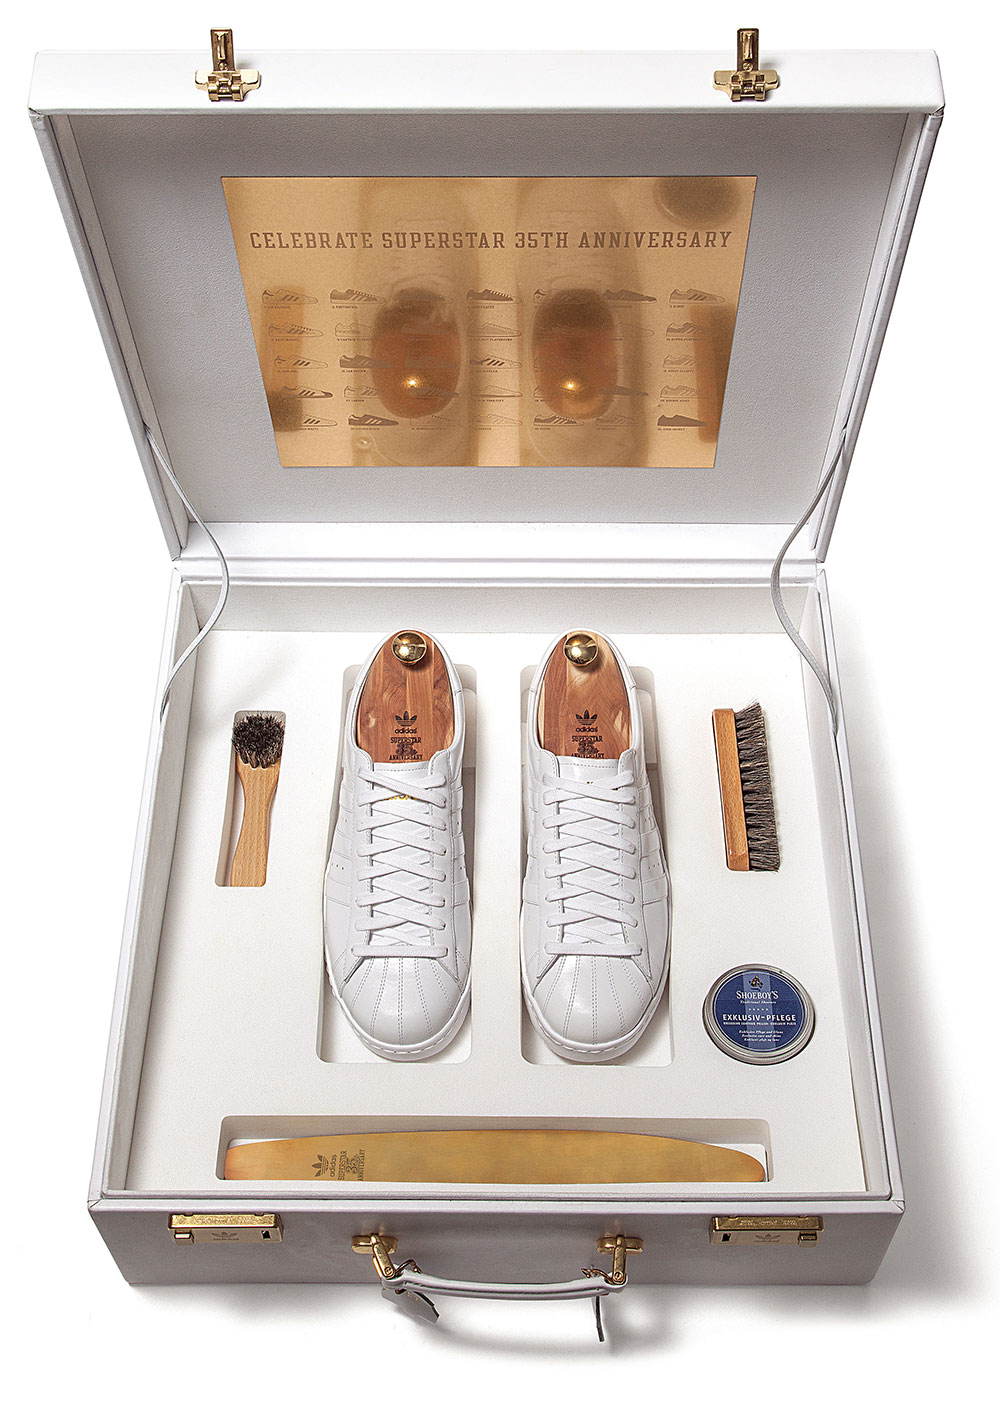 2005: Superstar #35 was entirely handmade and presented in a white case with gold-plated hardware. Photograph: Taschen